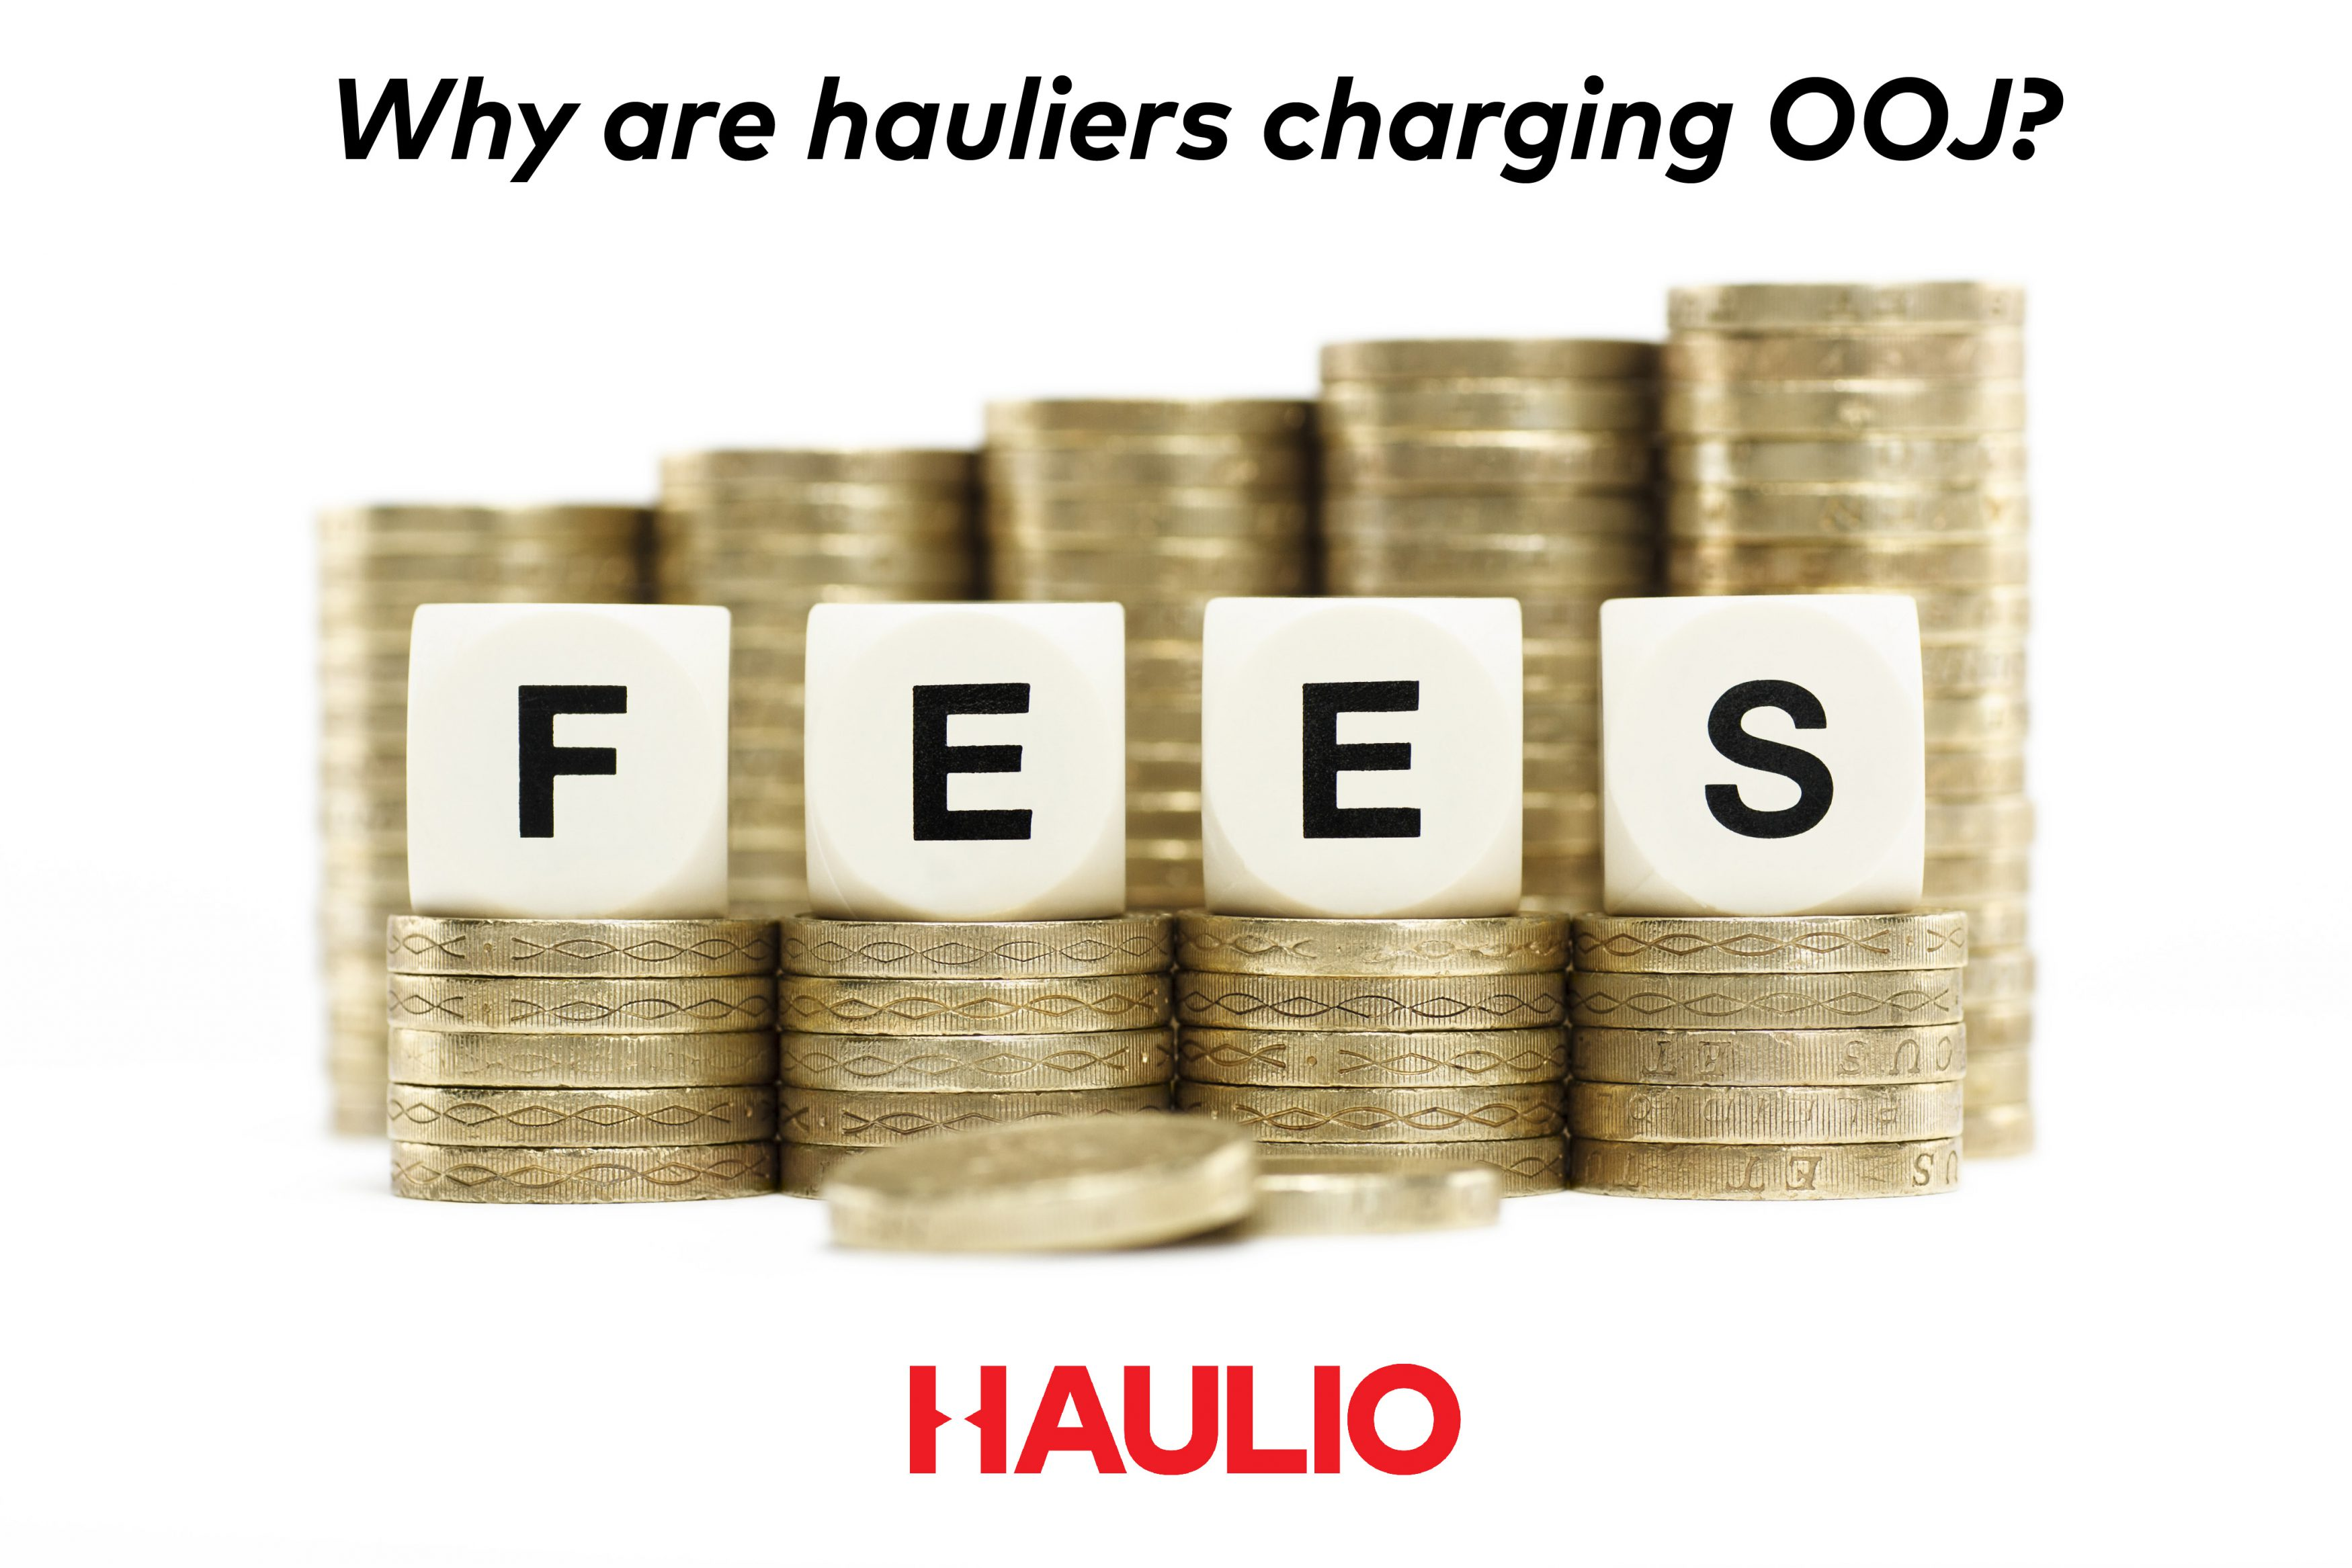 What is OOJ, and why are hauliers charging it?